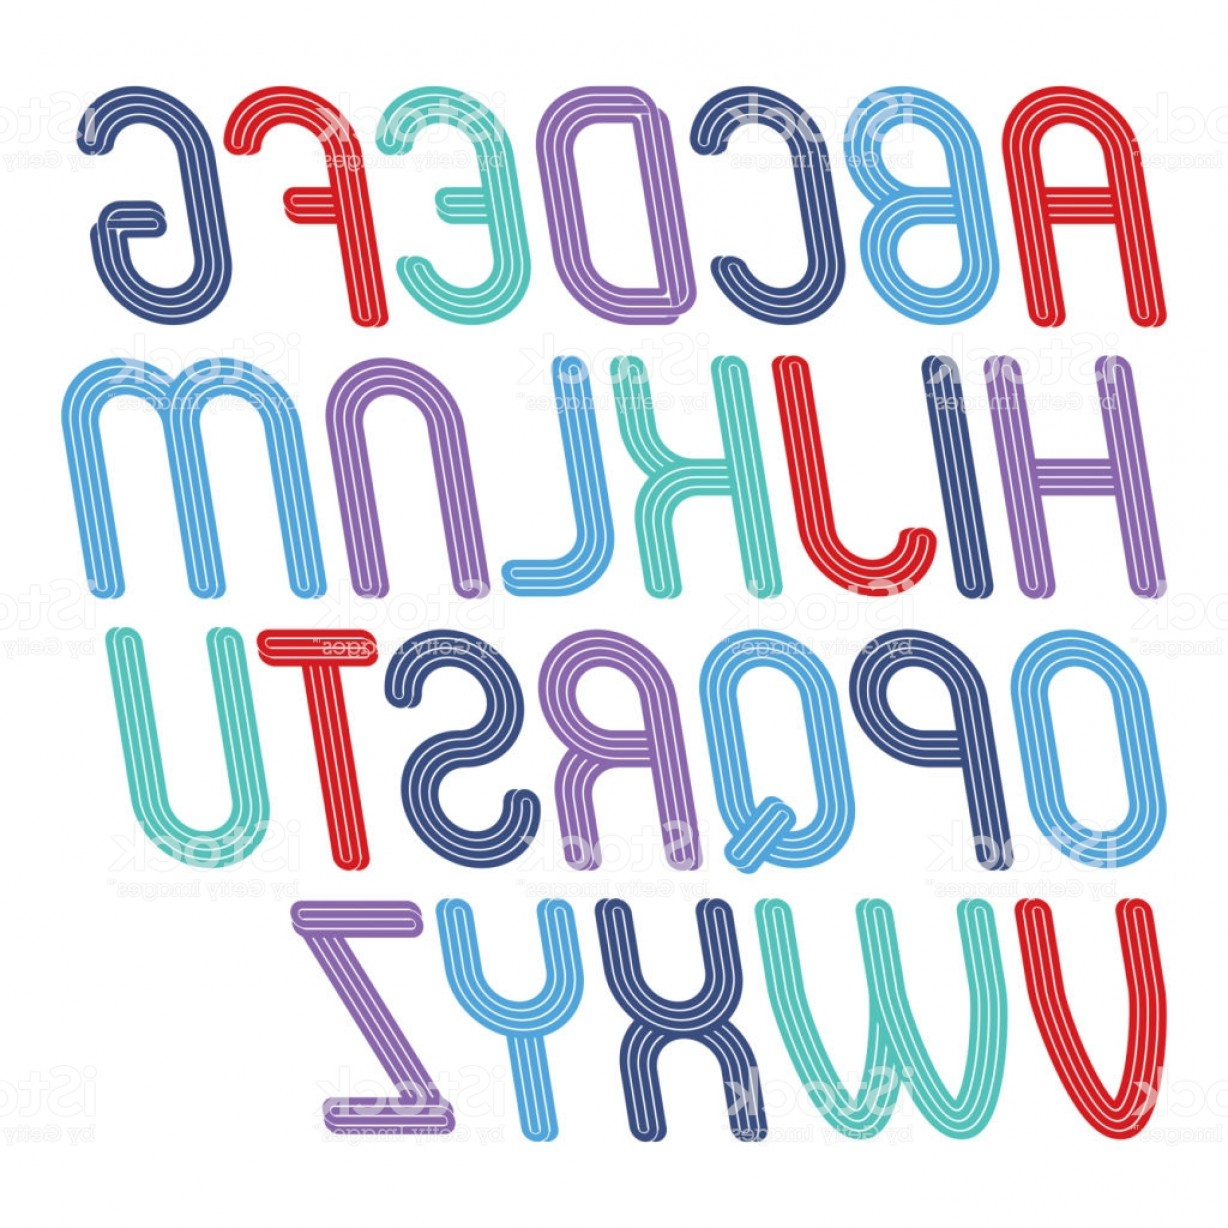 Cursive Lines Vector: Vector Funky Cursive Capital Alphabet Letters Collection With Parallel Lines Can Be Gm